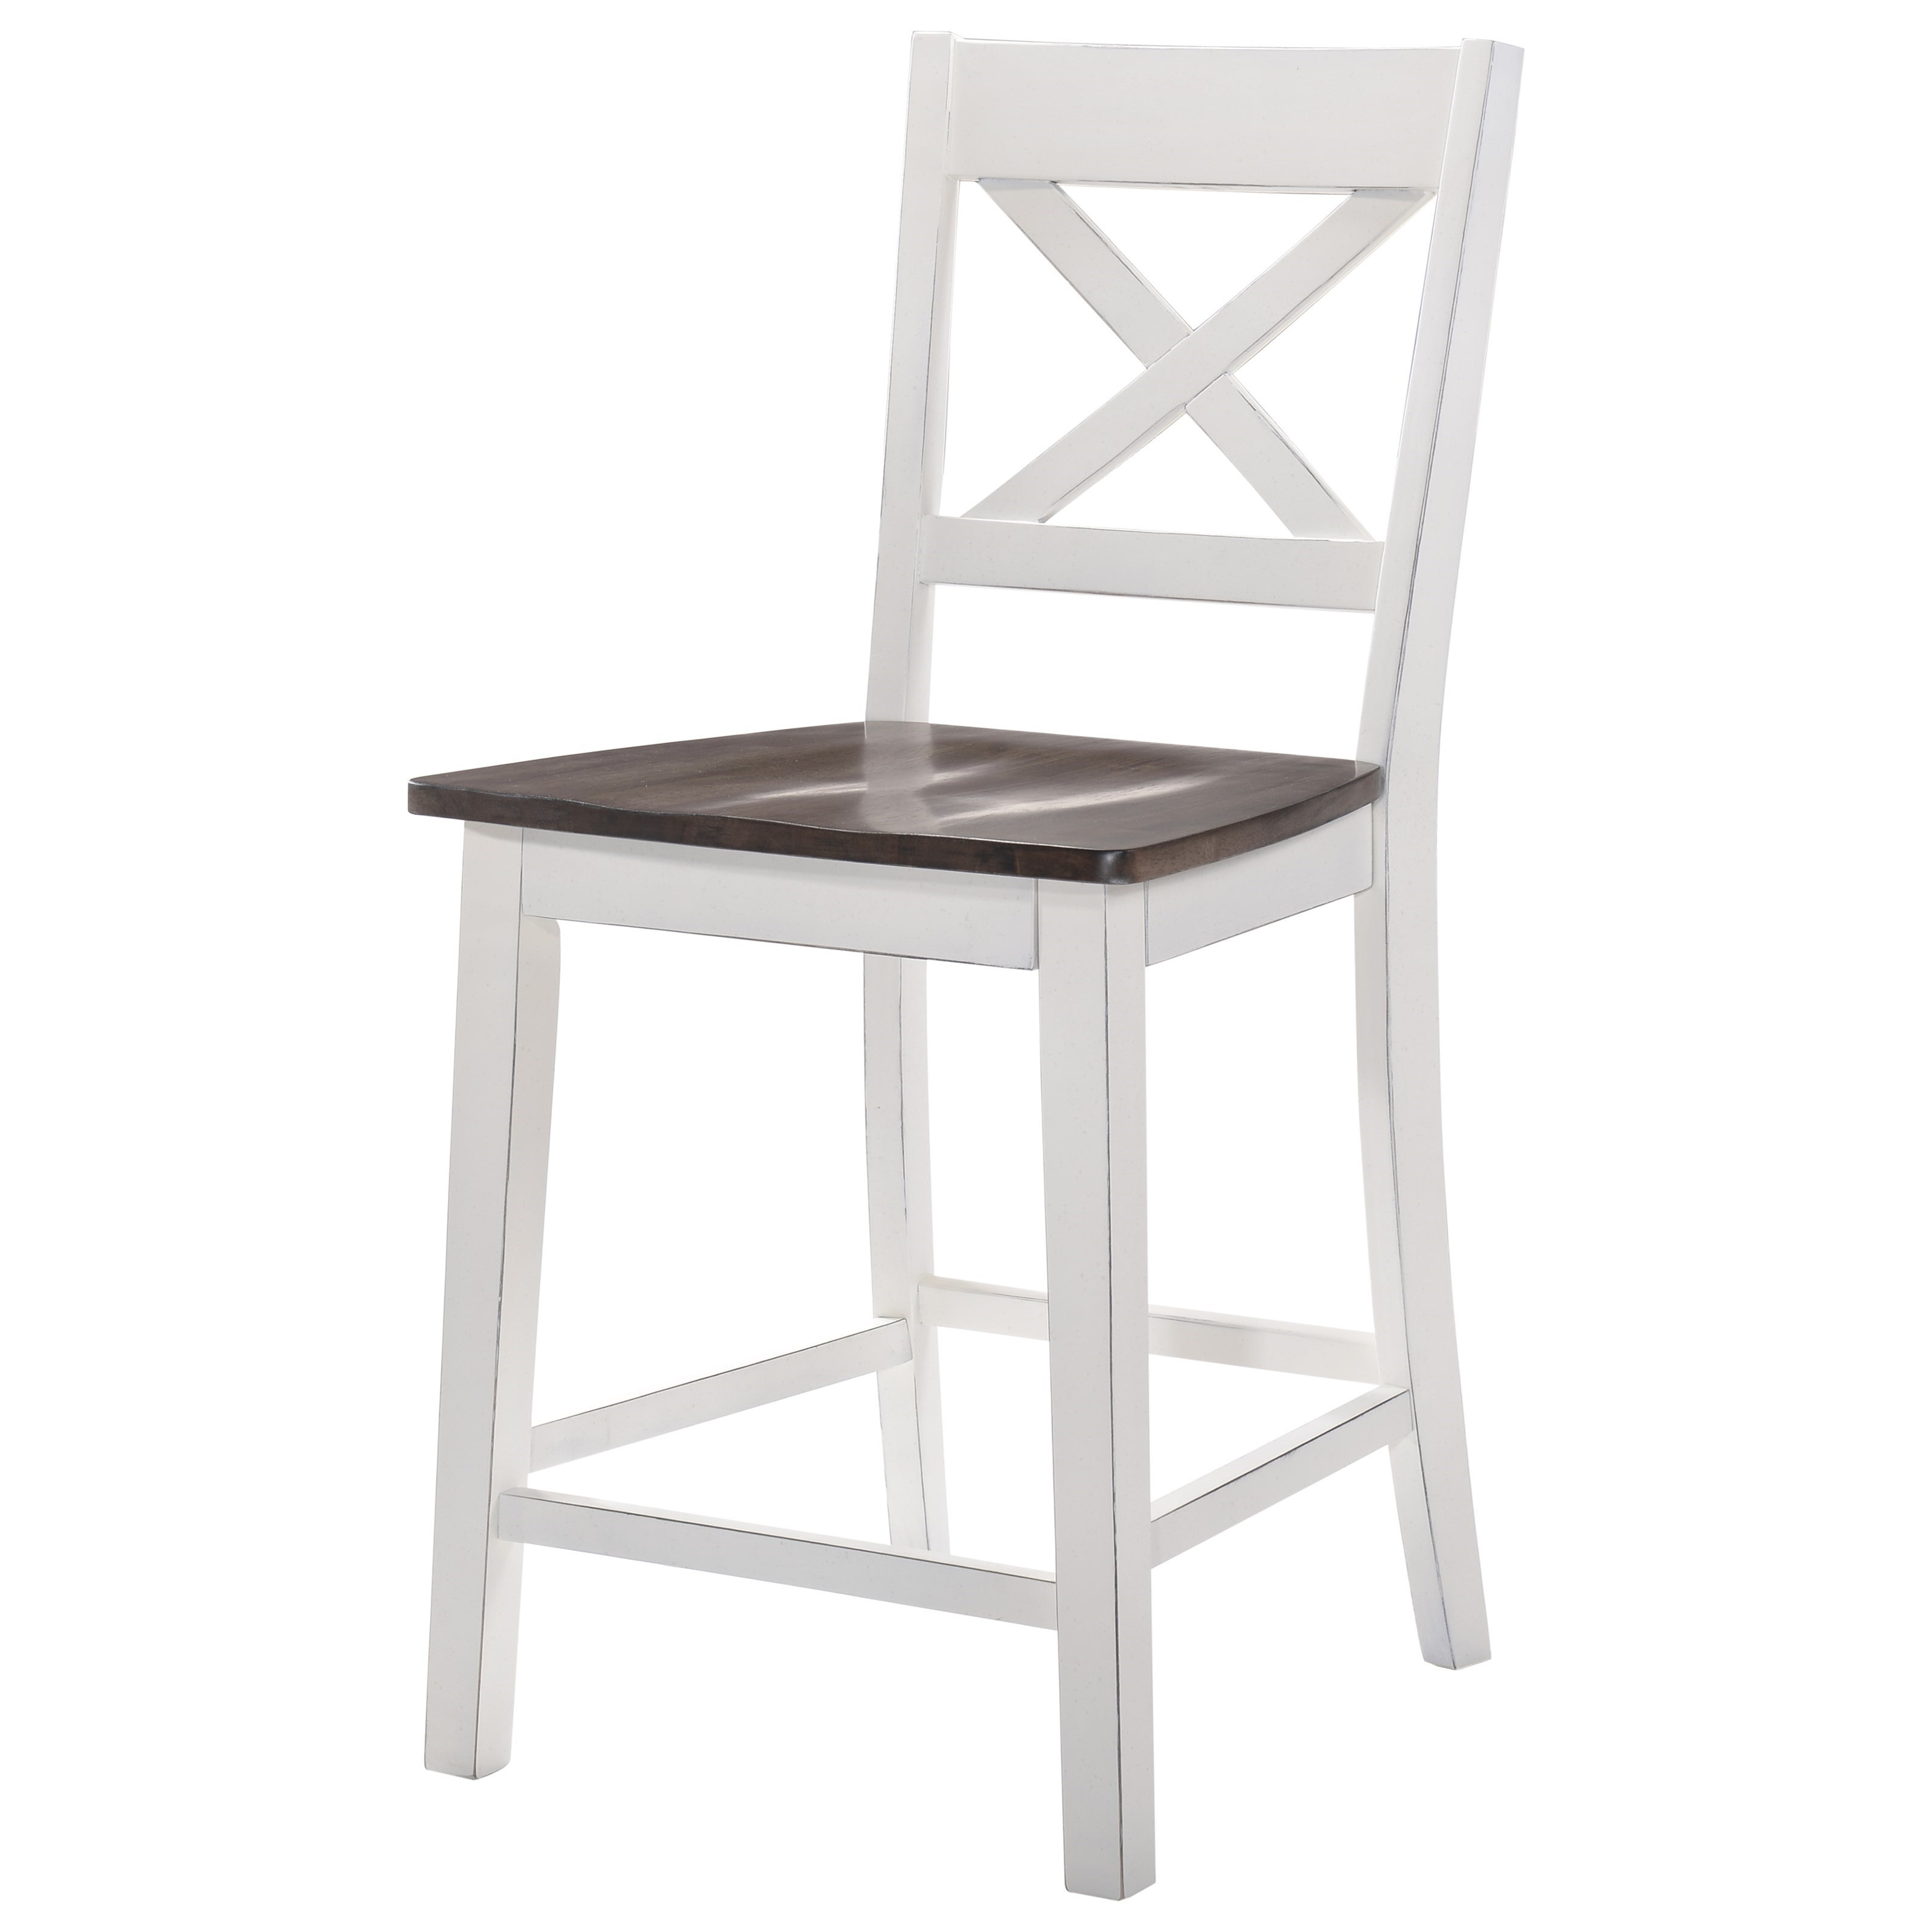 5057 Bar Stool by Lane at Esprit Decor Home Furnishings